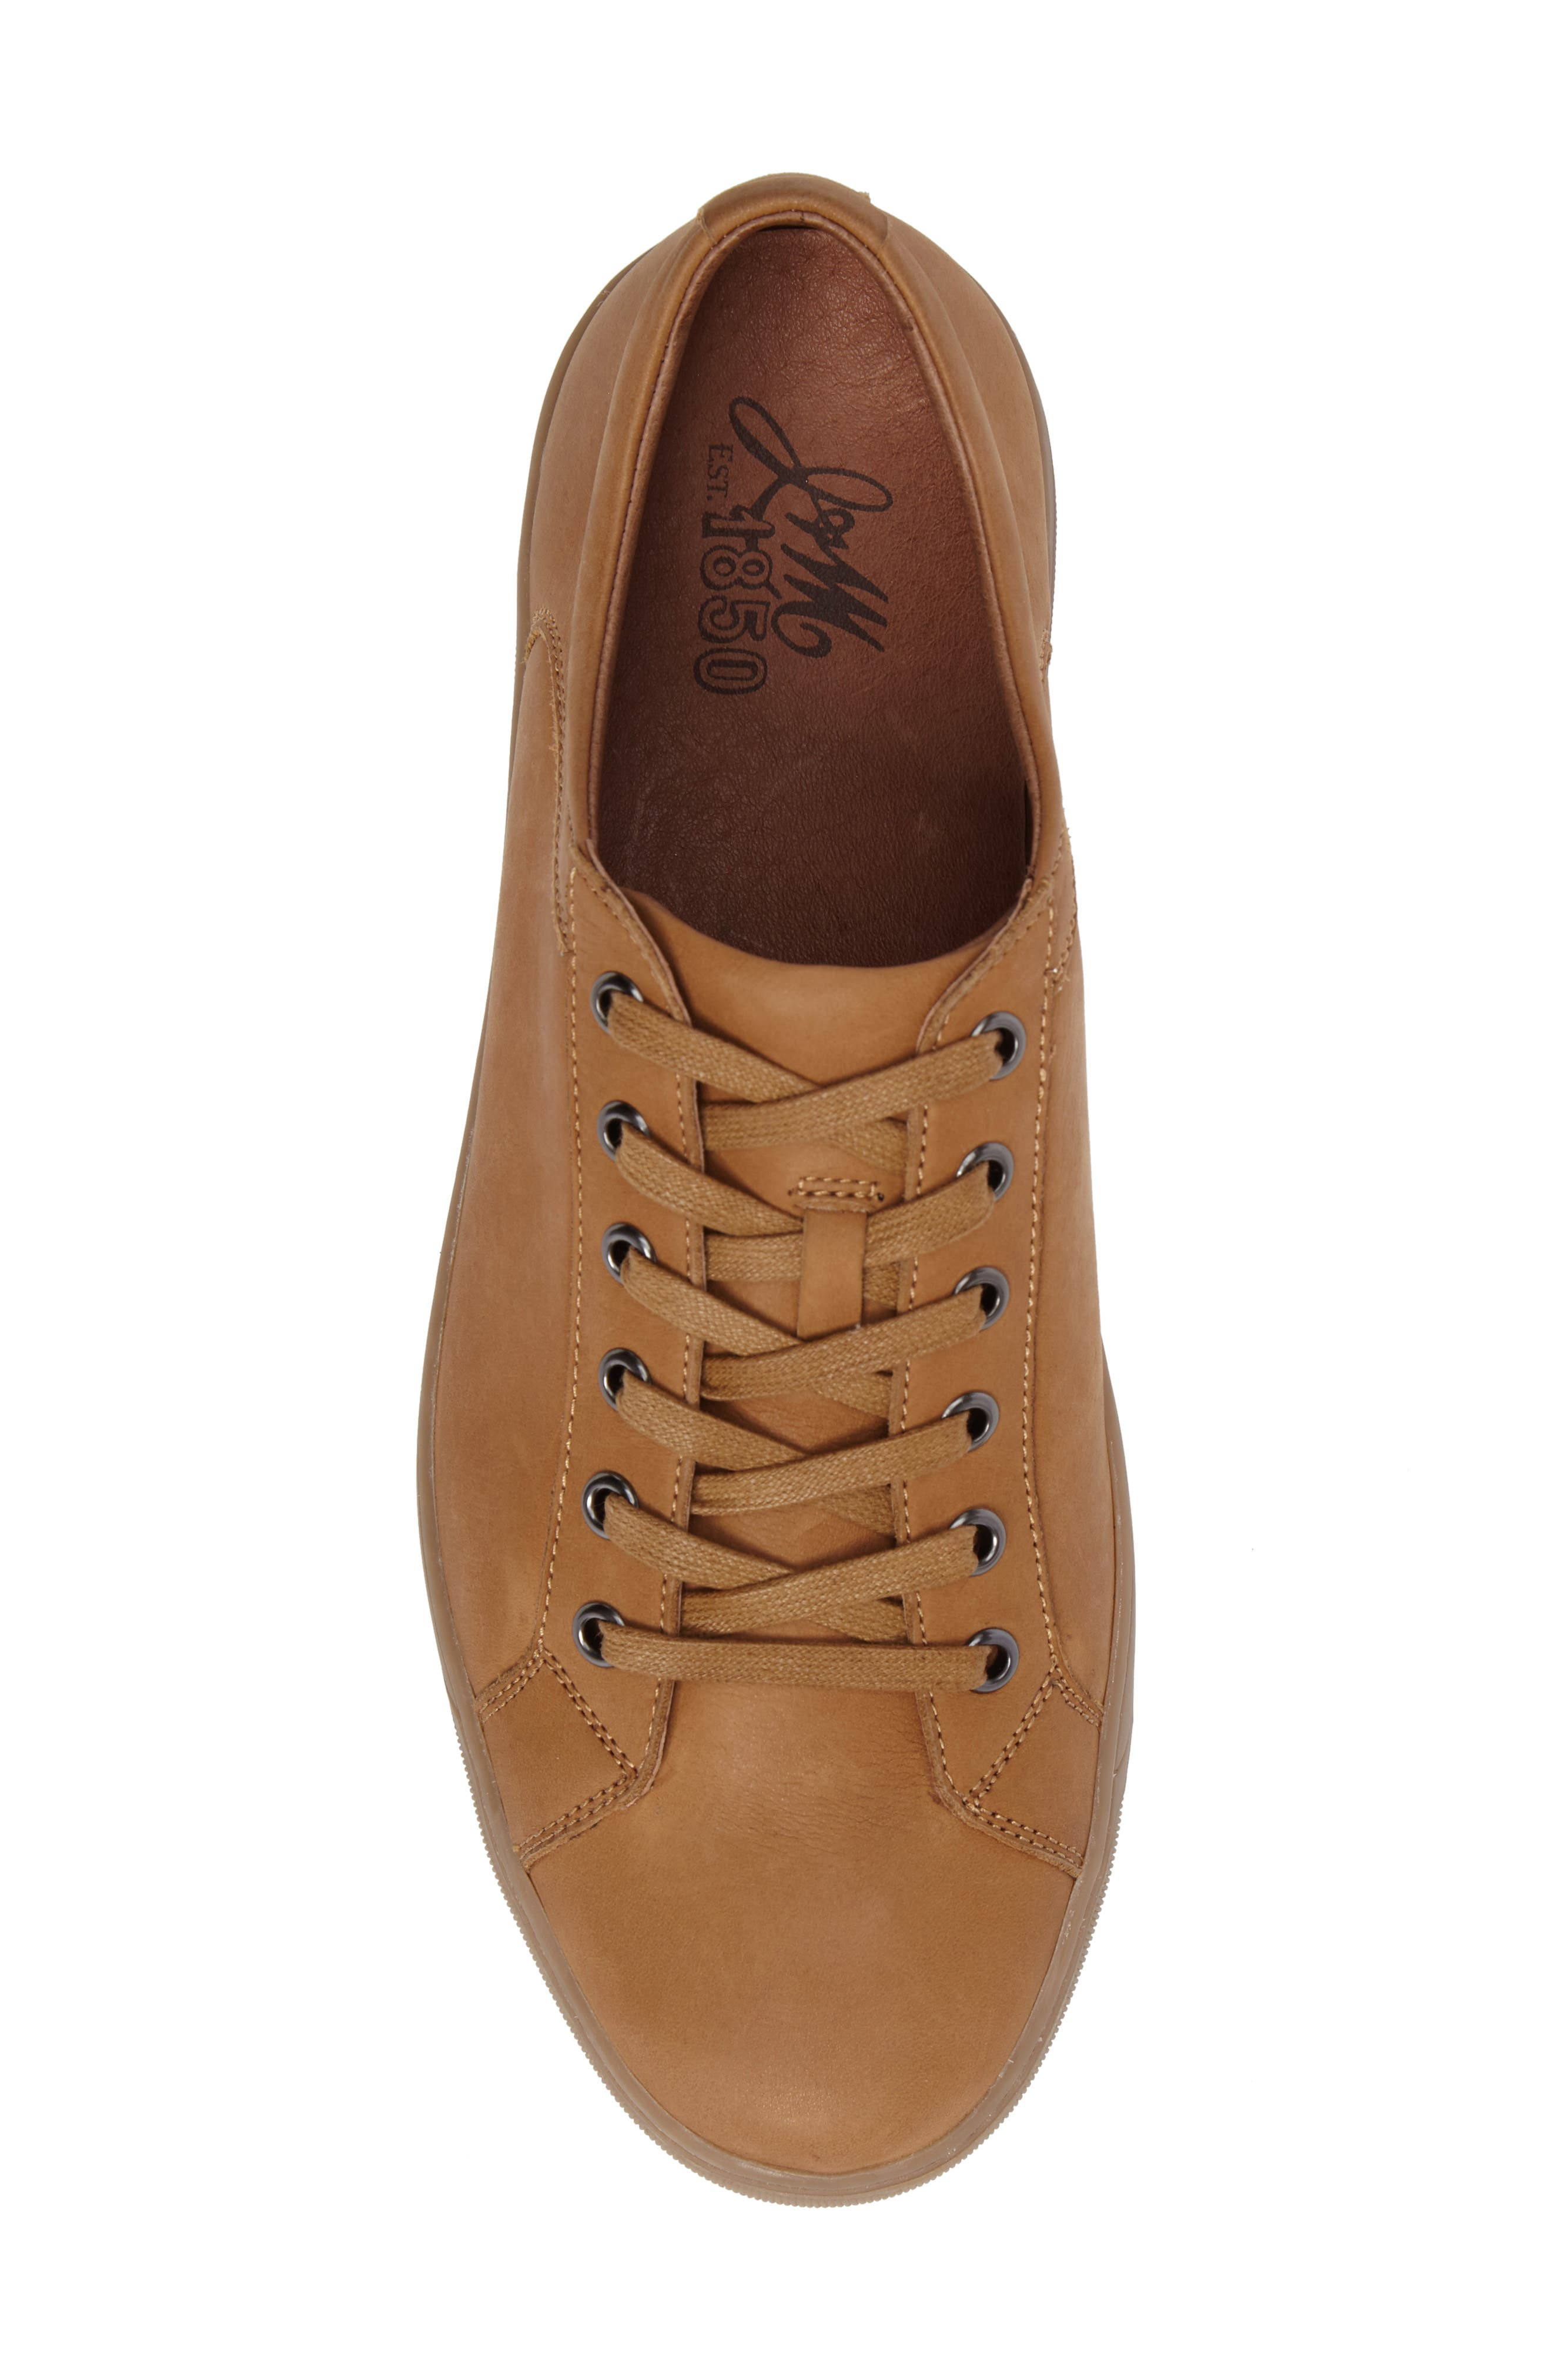 Allister Sneaker,                             Alternate thumbnail 4, color,                             Natural Leather